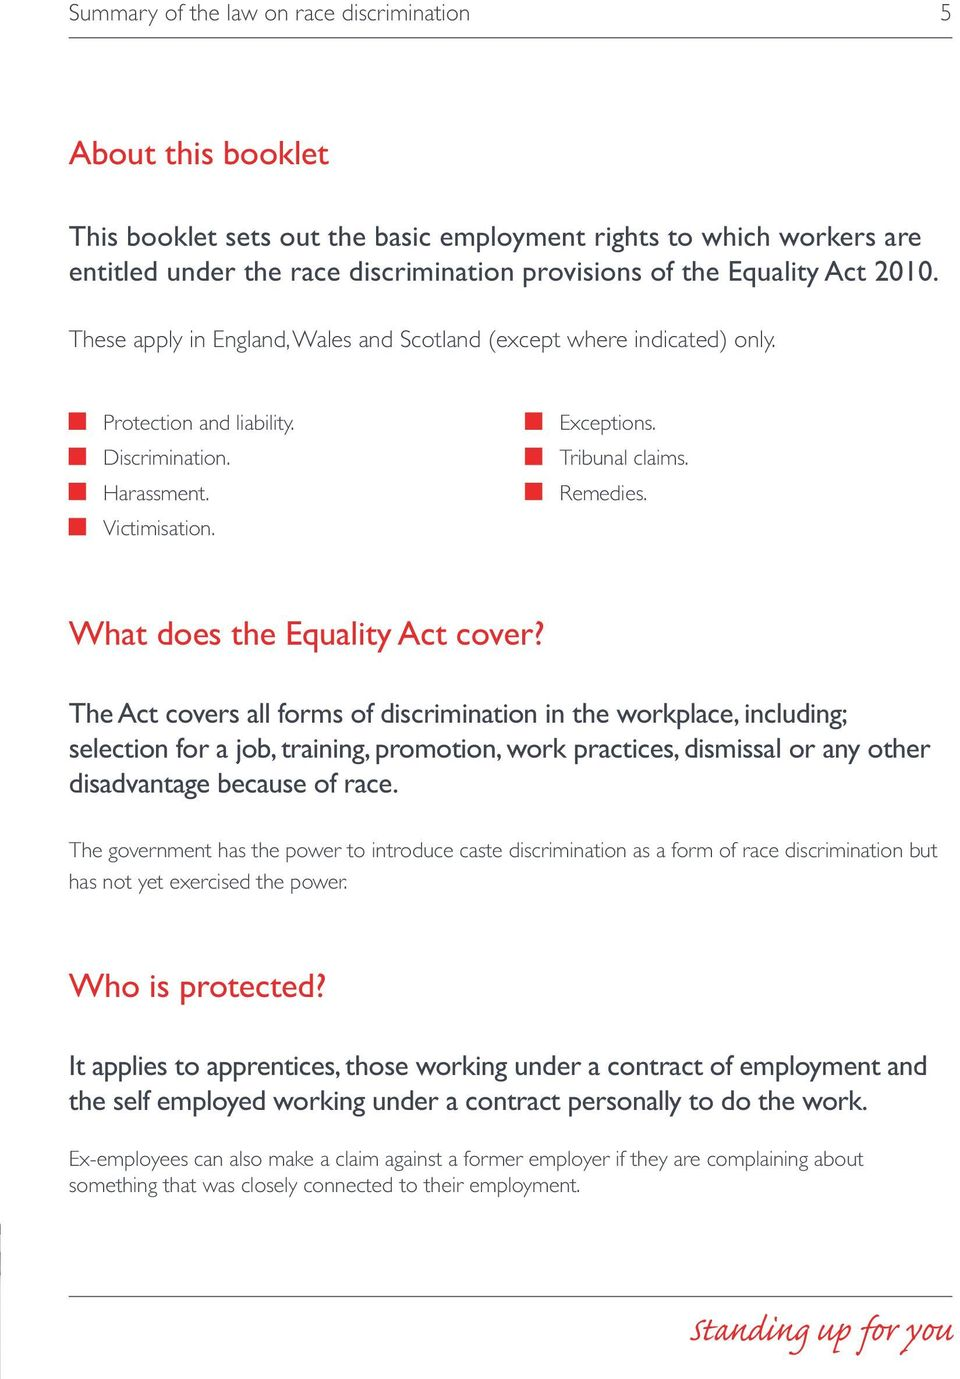 What does the Equality Act cover?